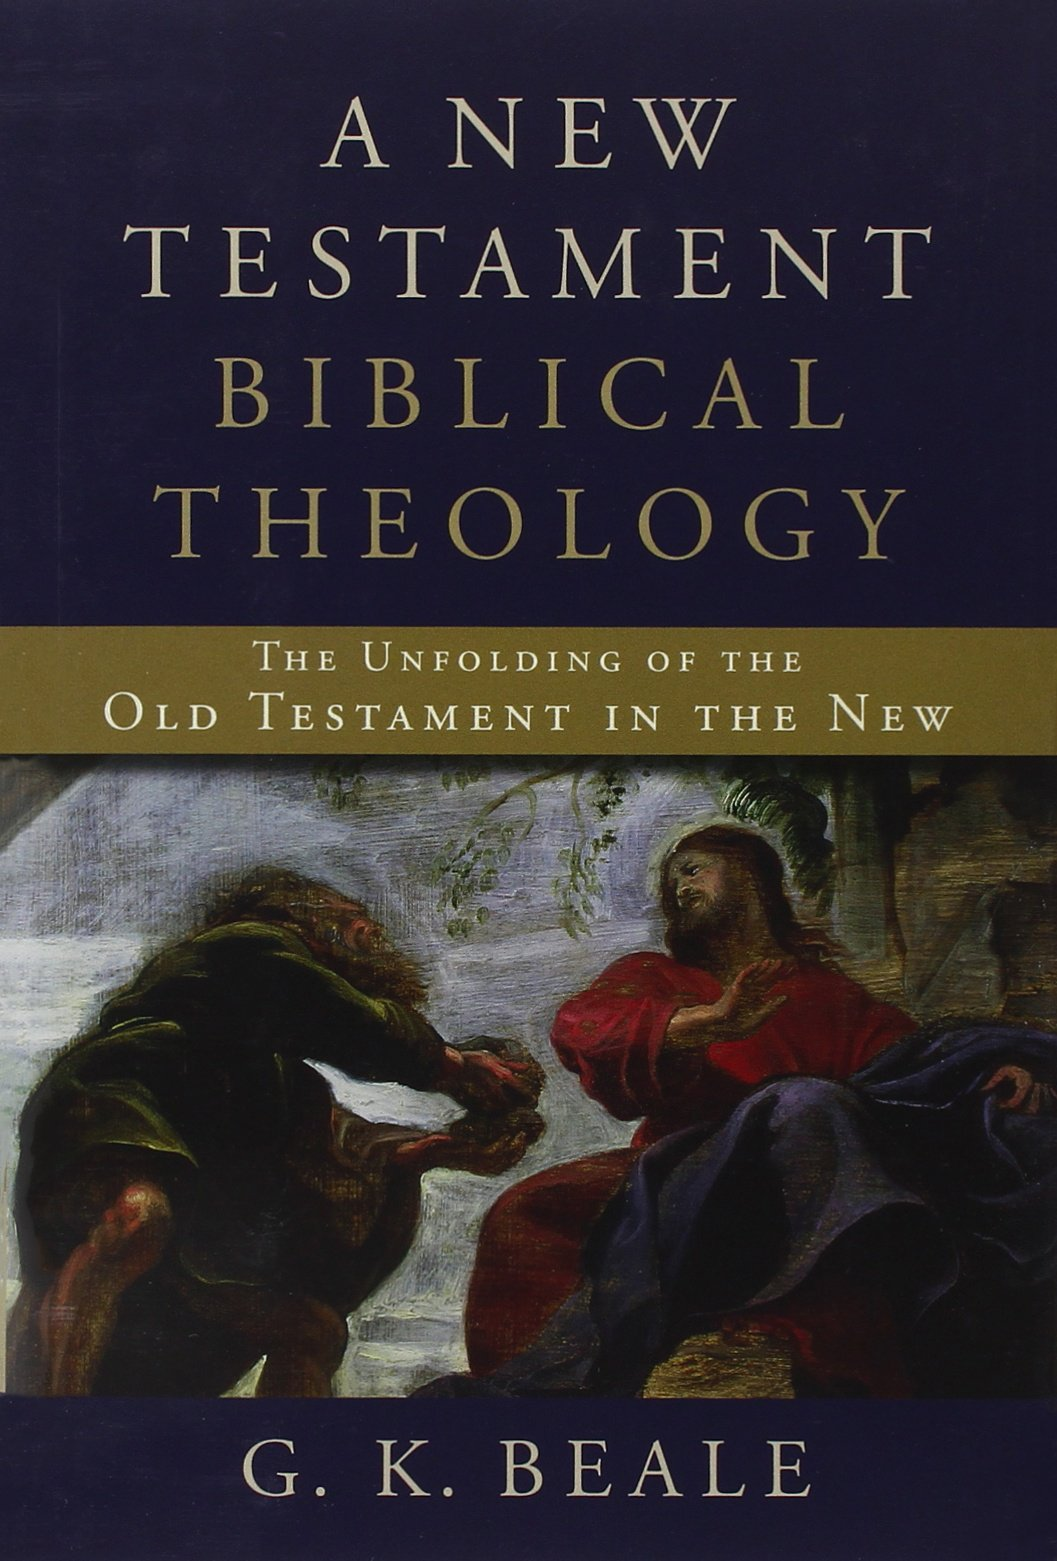 A New Testament Biblical Theology: The Unfolding of the Old